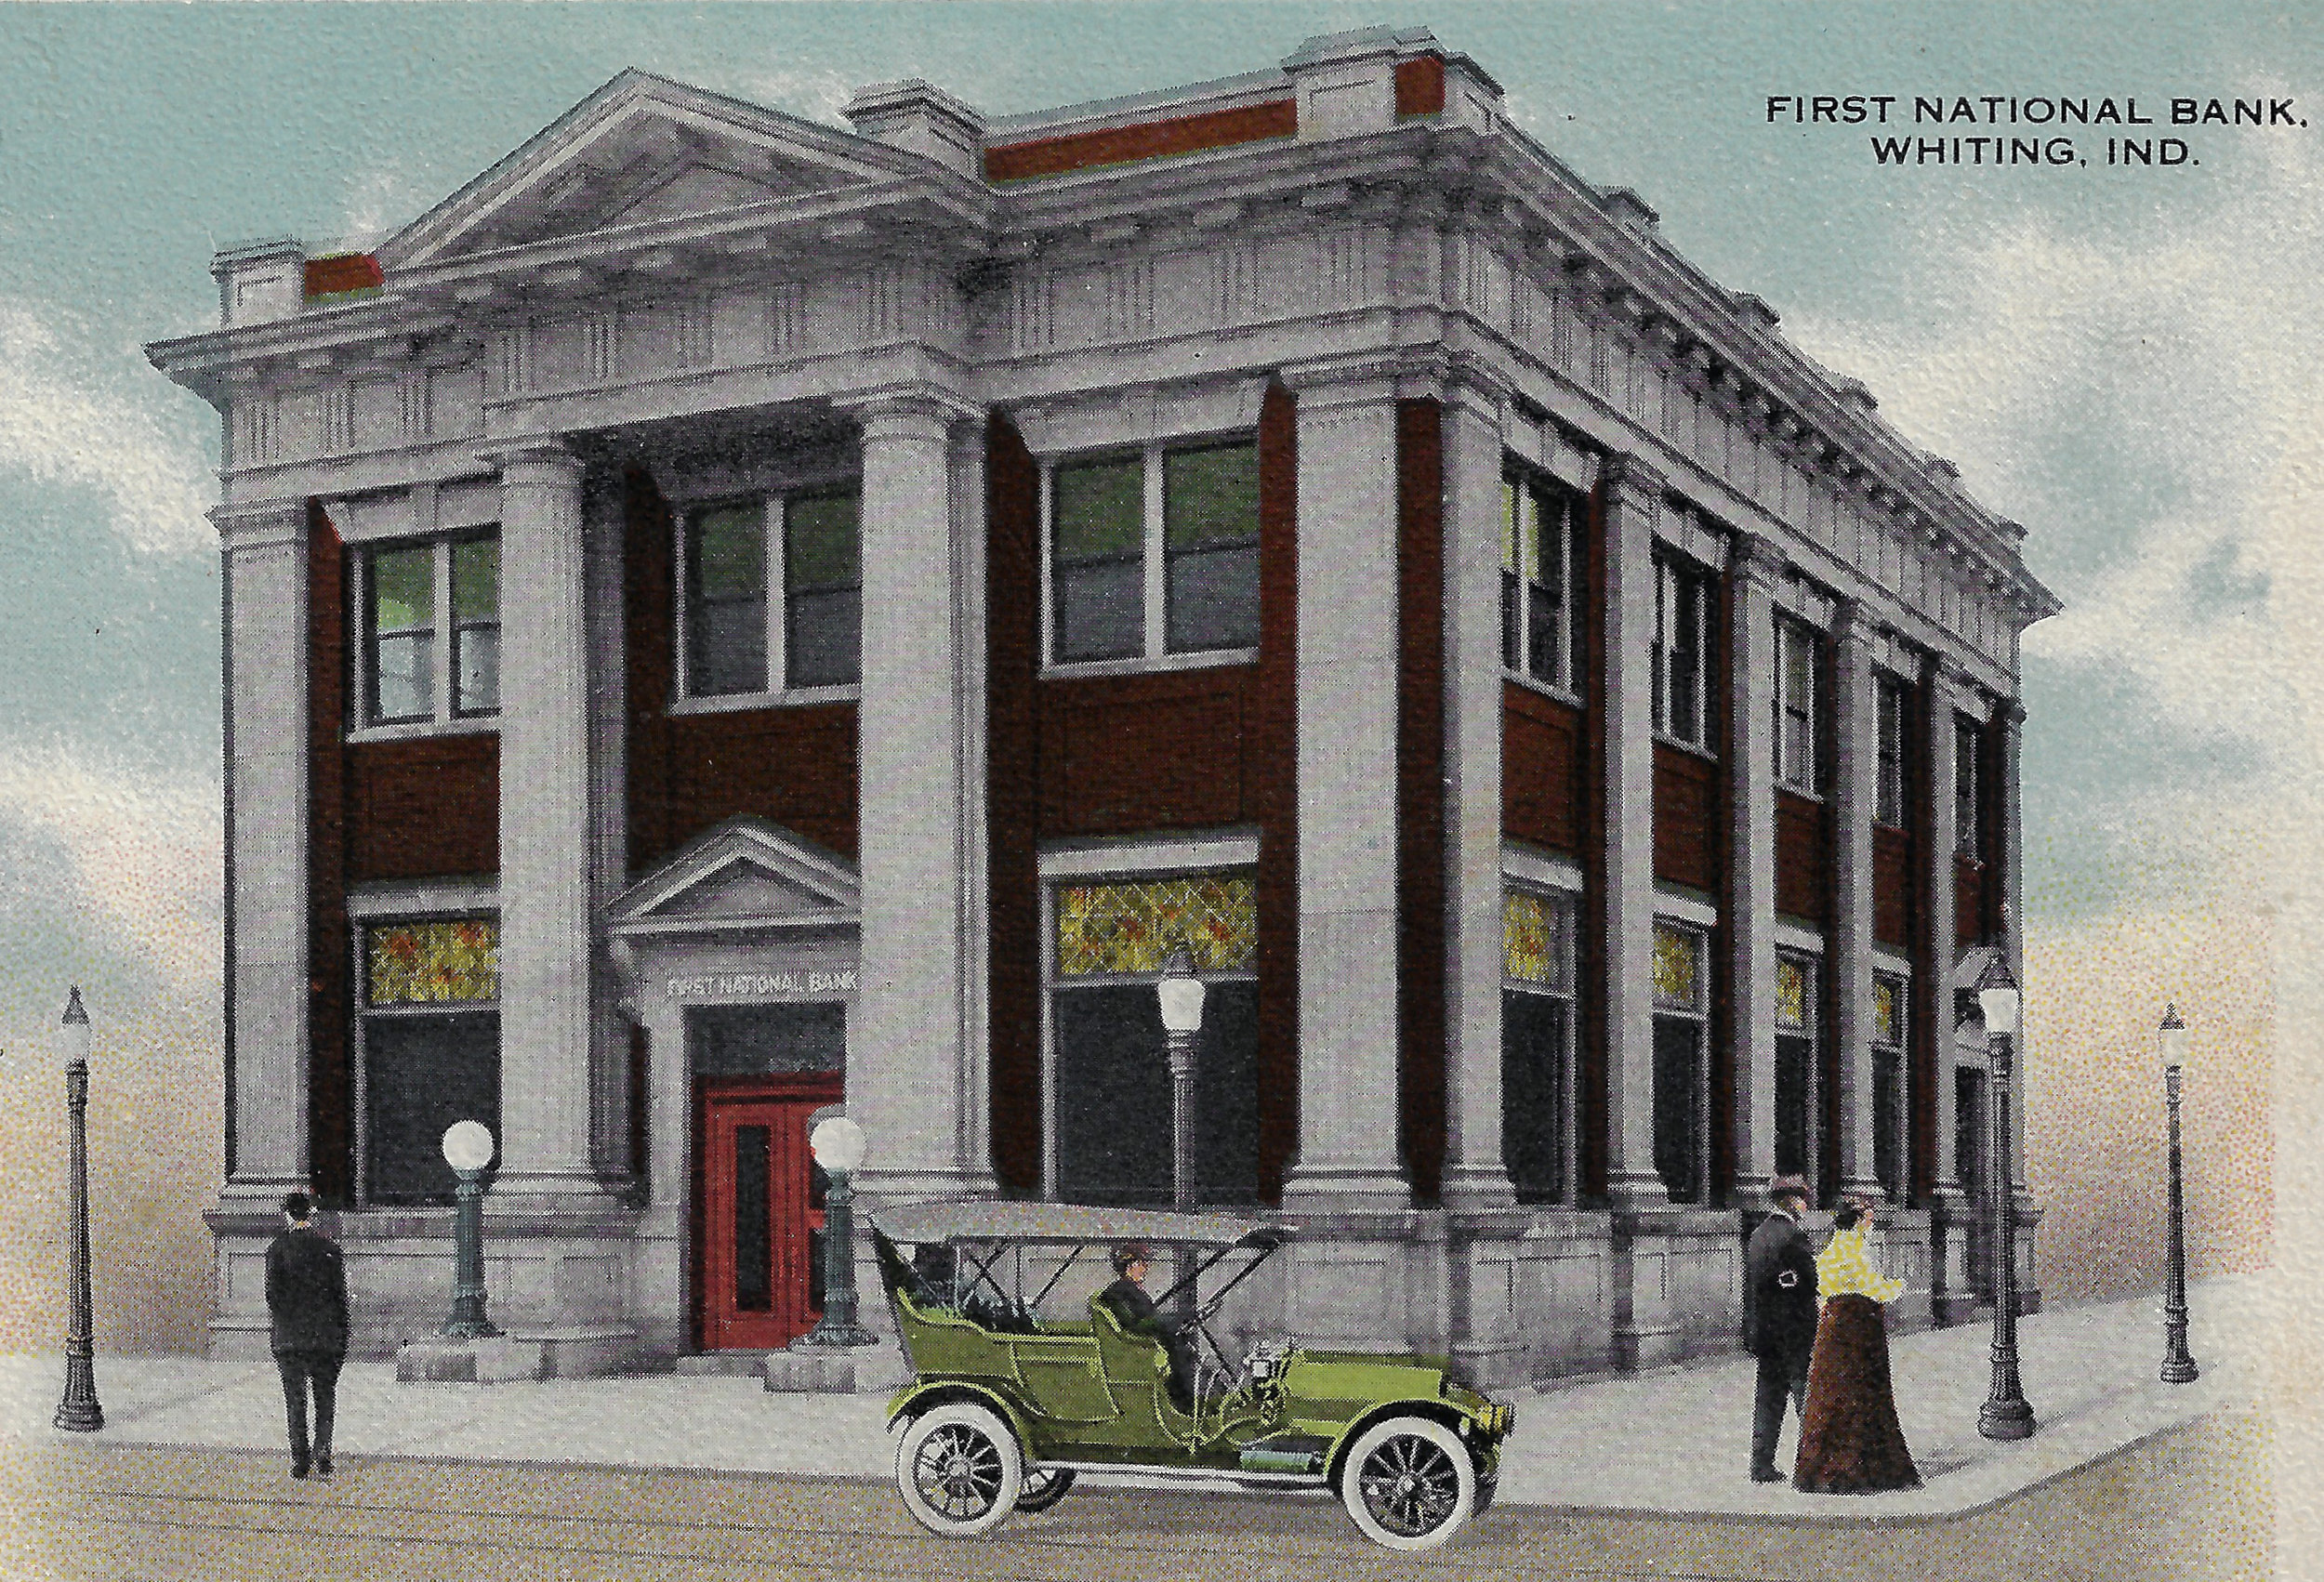 A postcard shows the bank before it opened in 1915. The electric lamps on both sides of the bank were an uncommon sight in those years in Whiting.